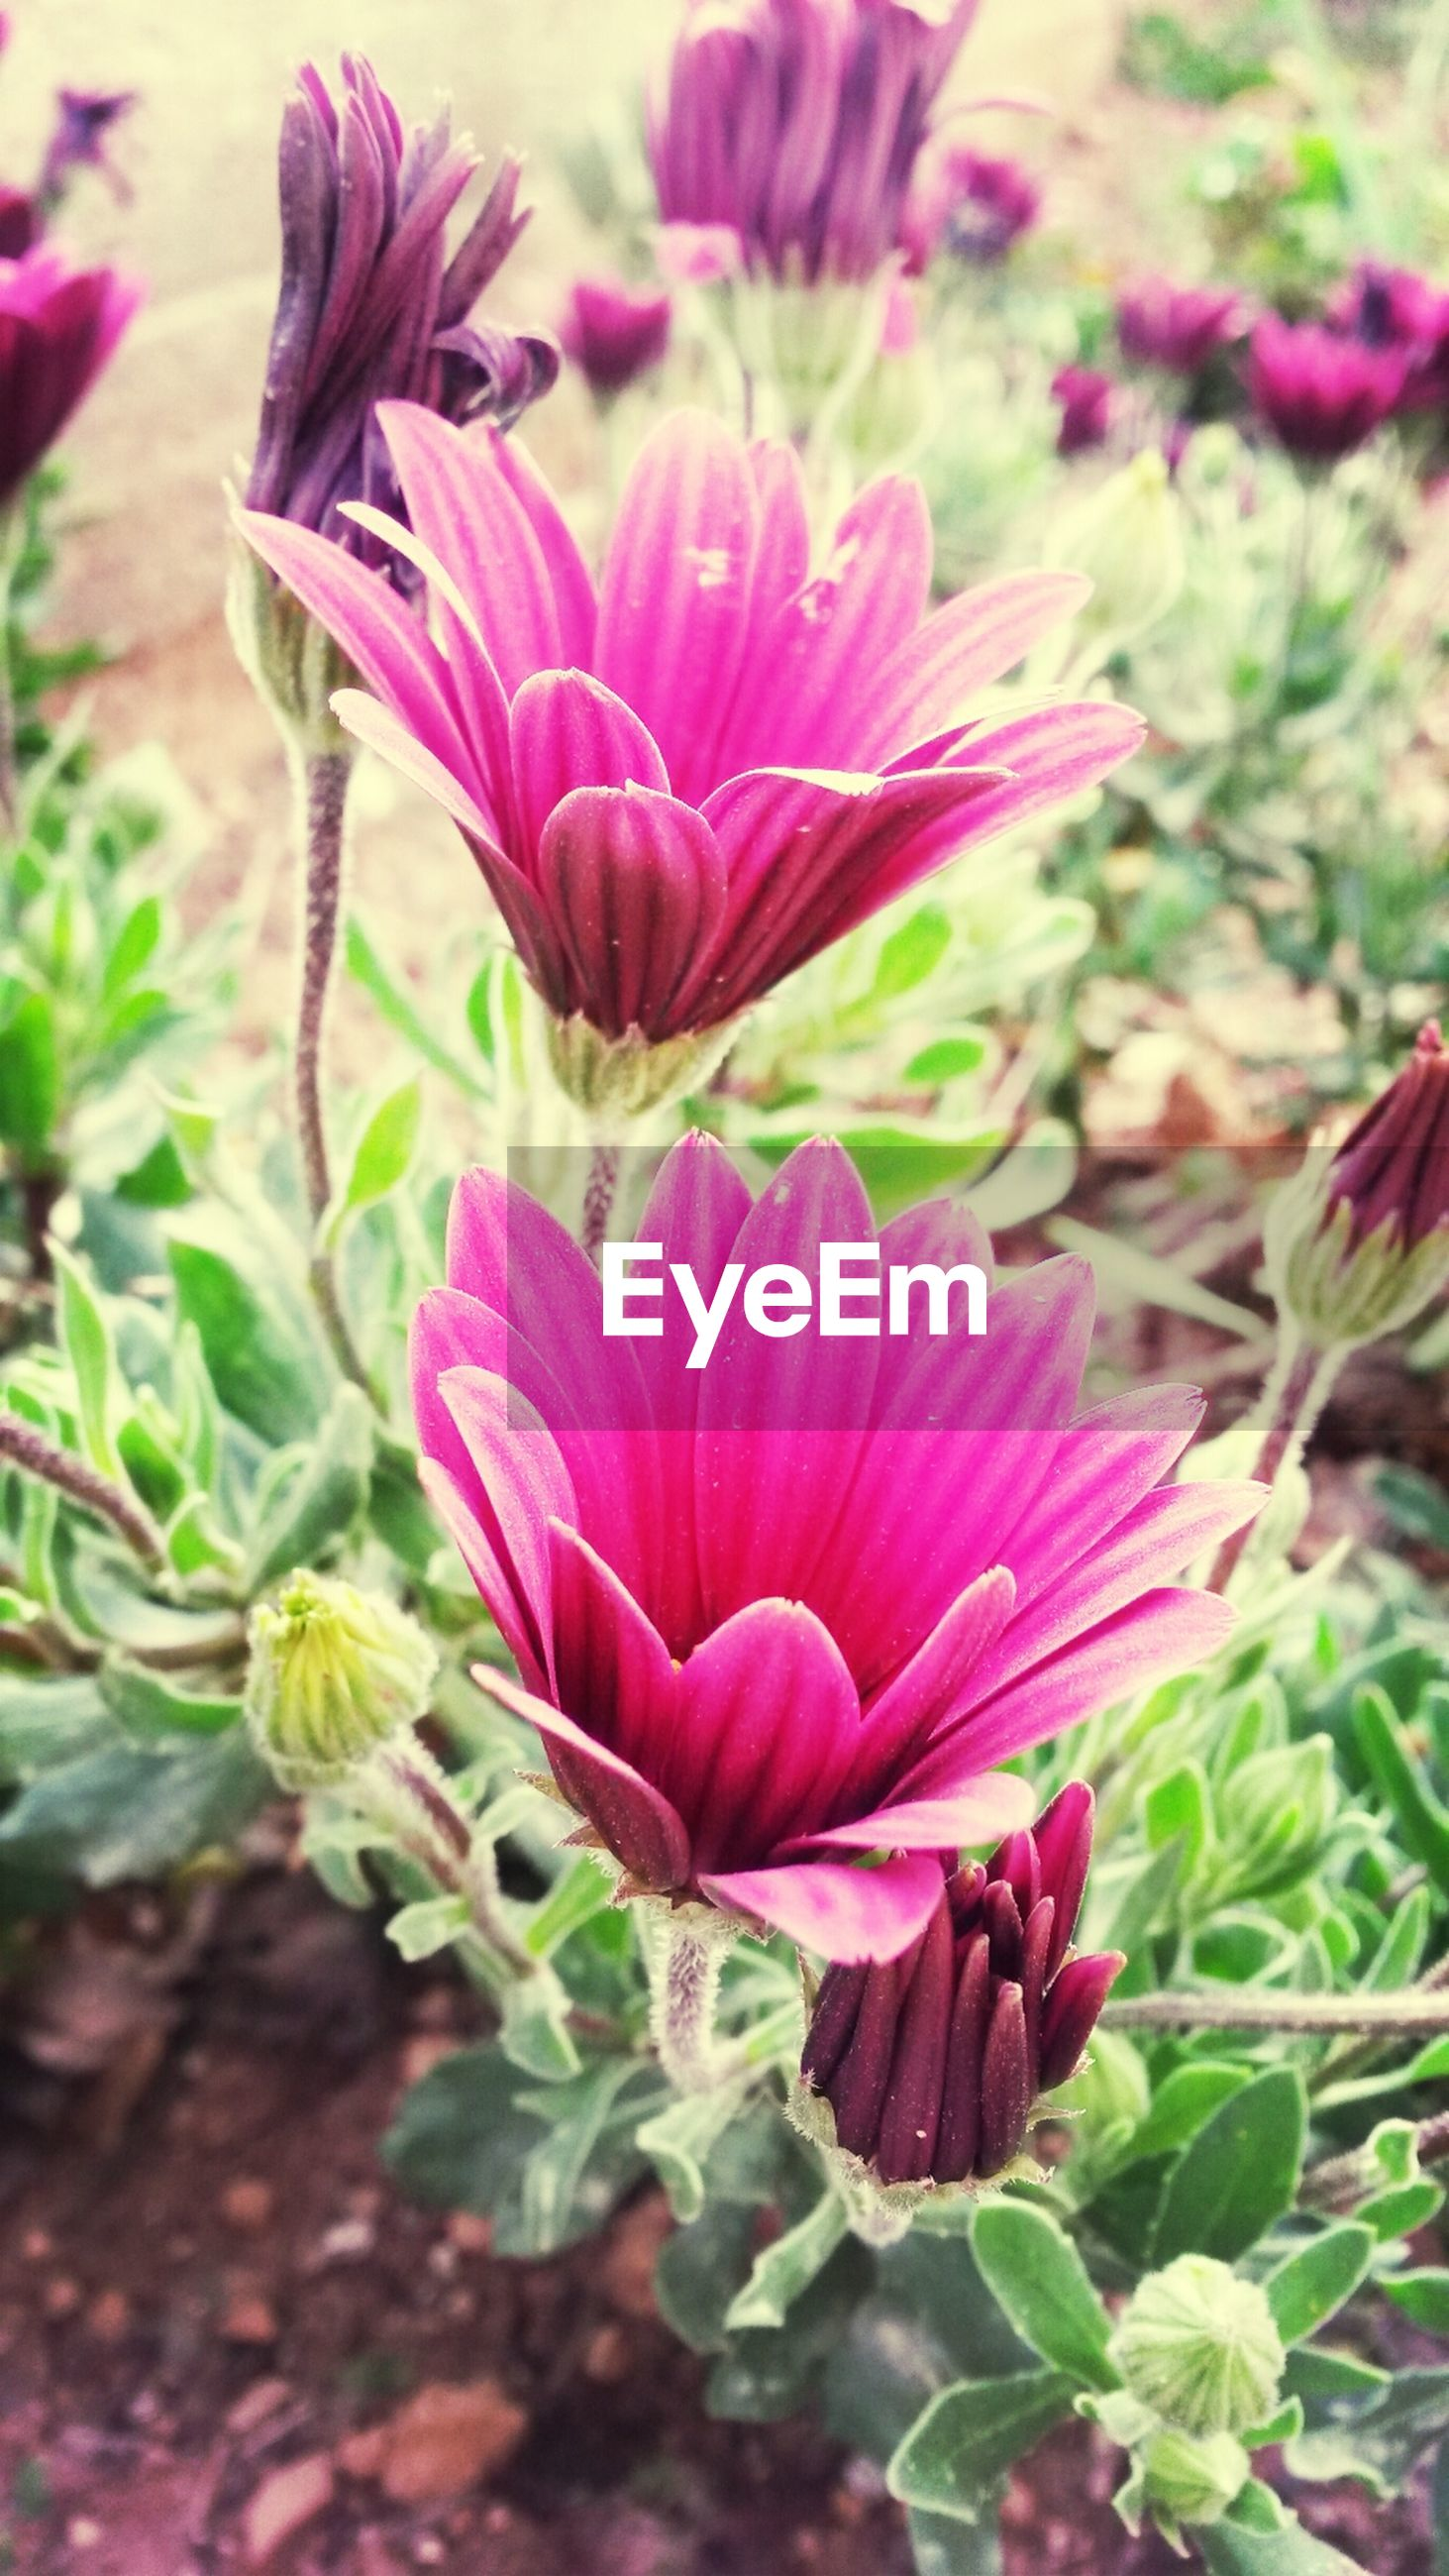 flower, freshness, petal, fragility, growth, flower head, beauty in nature, pink color, plant, close-up, nature, blooming, focus on foreground, stem, leaf, in bloom, blossom, bud, pink, field